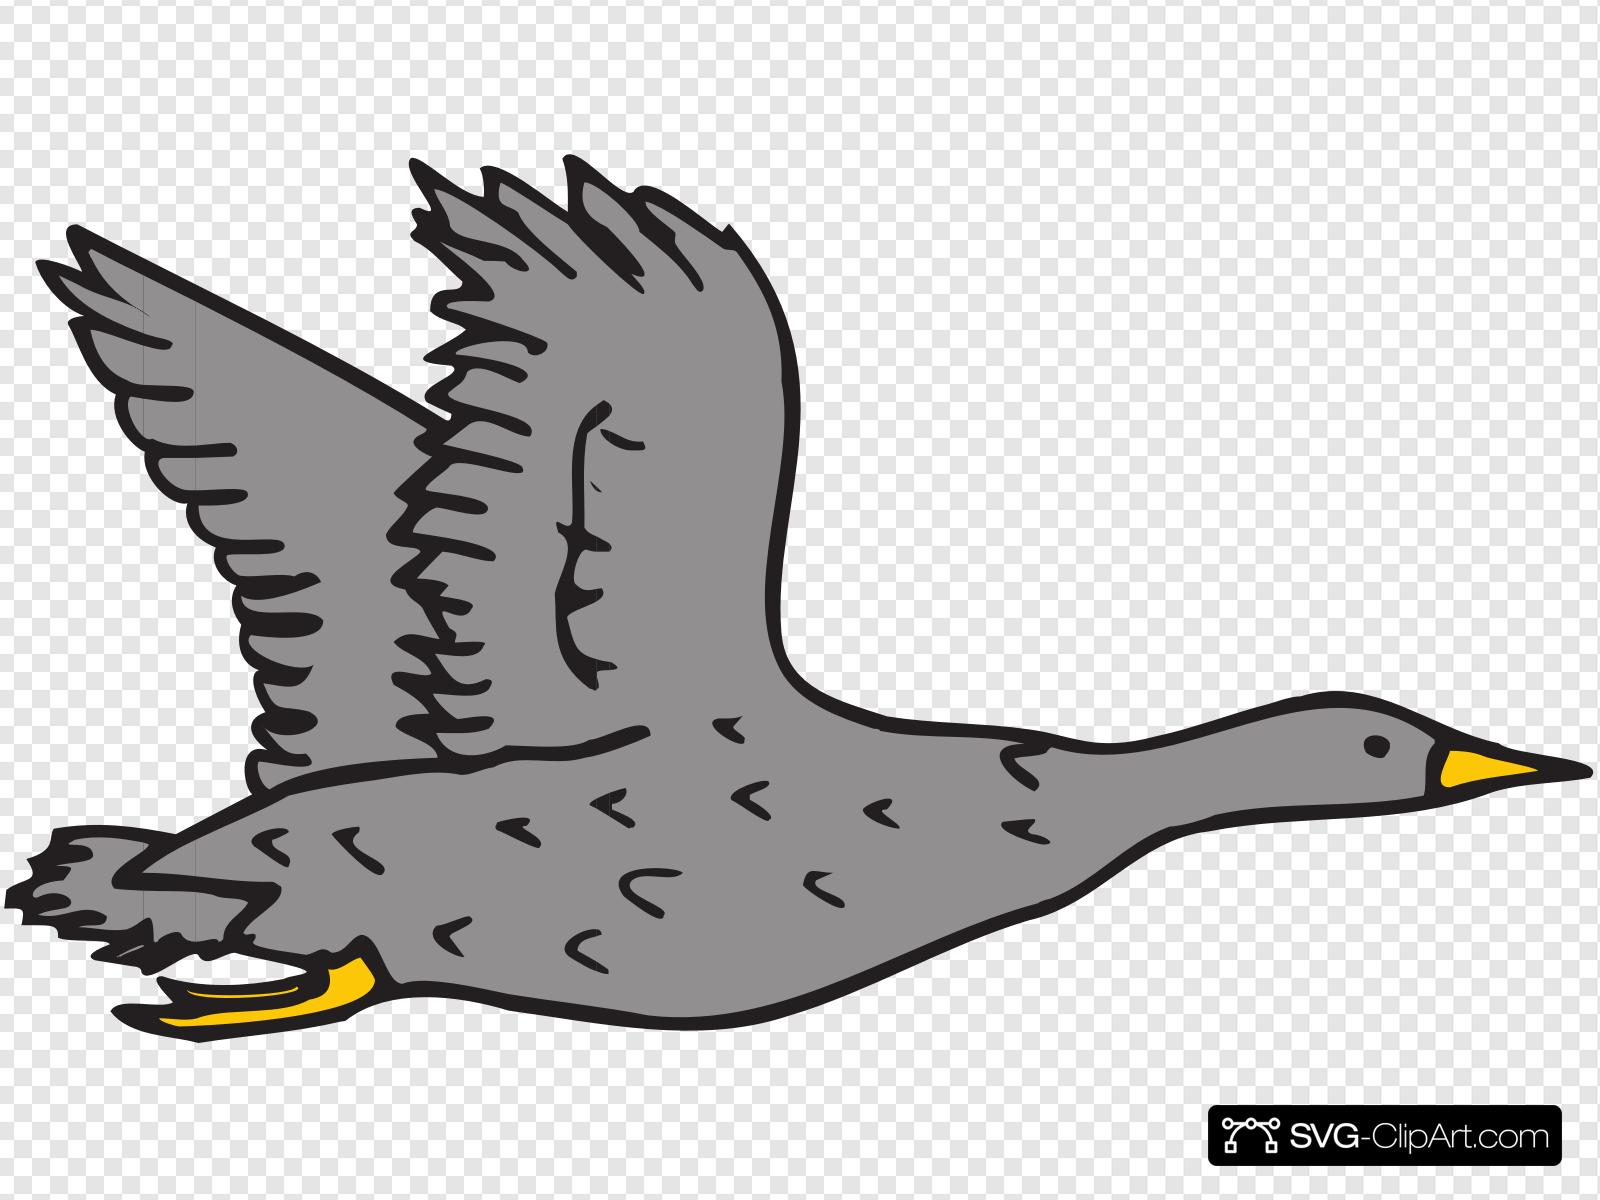 Gray Bird Clip art, Icon and SVG.